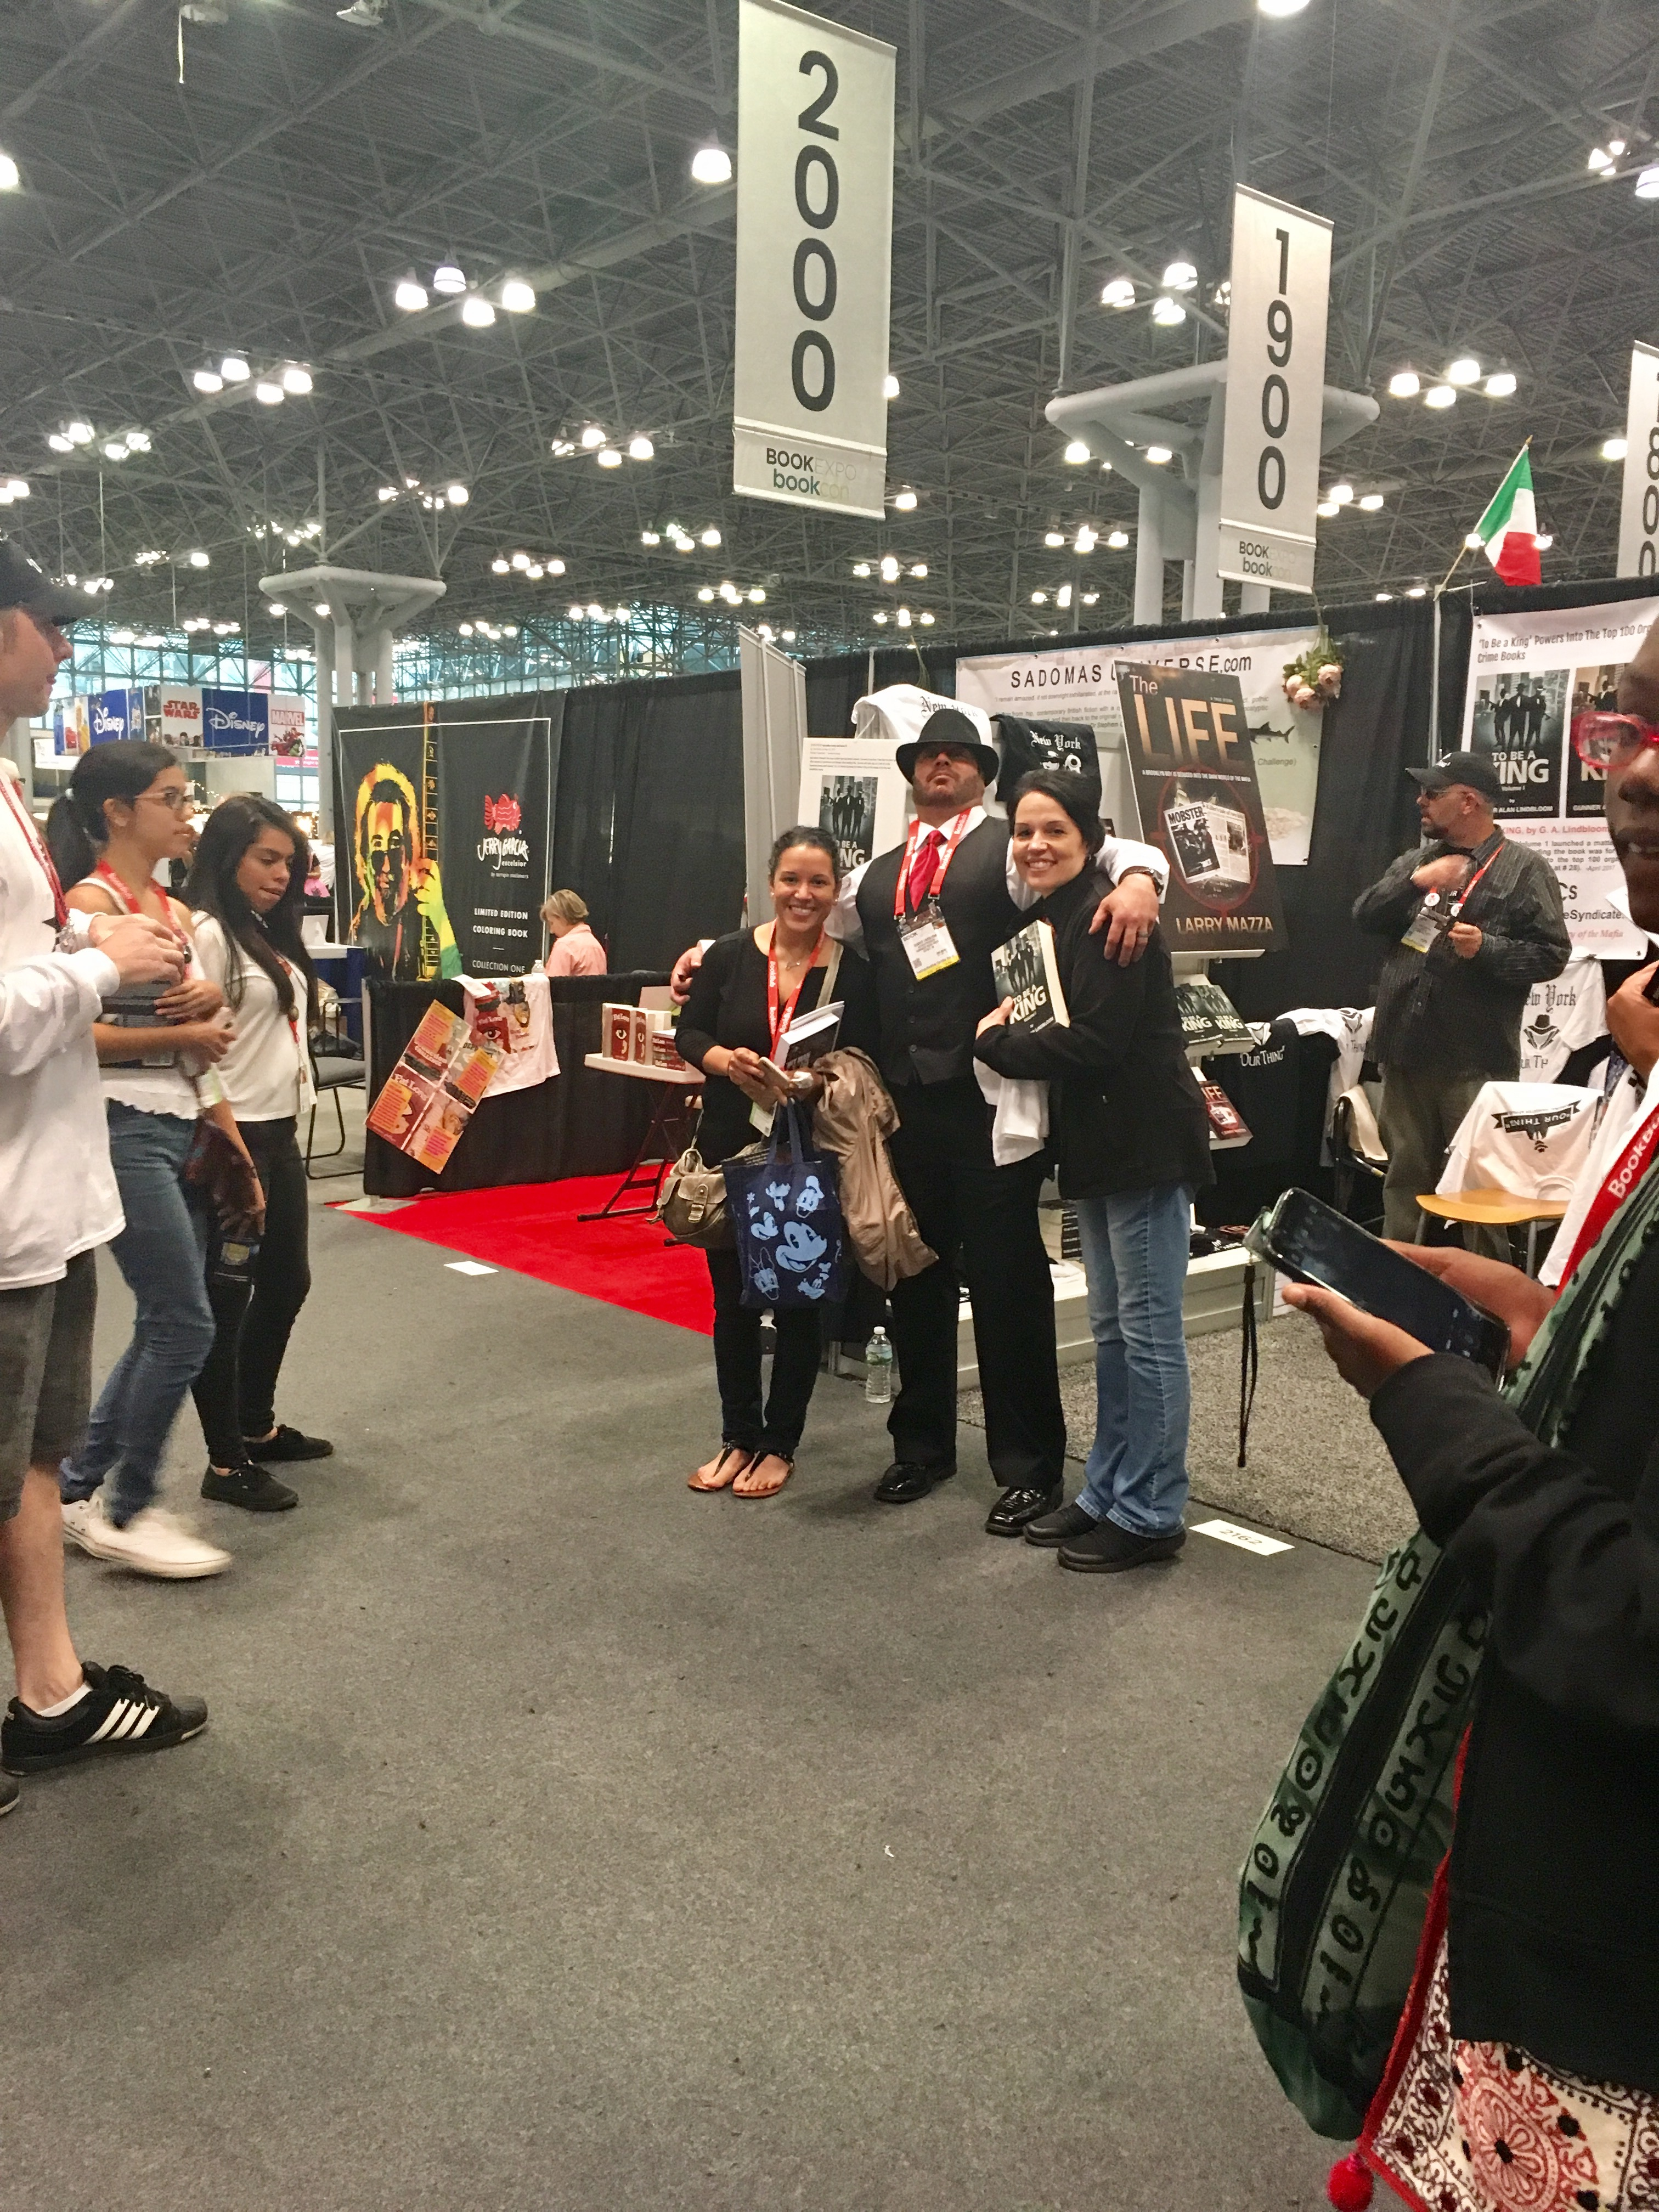 Gunner at Book Con NYC